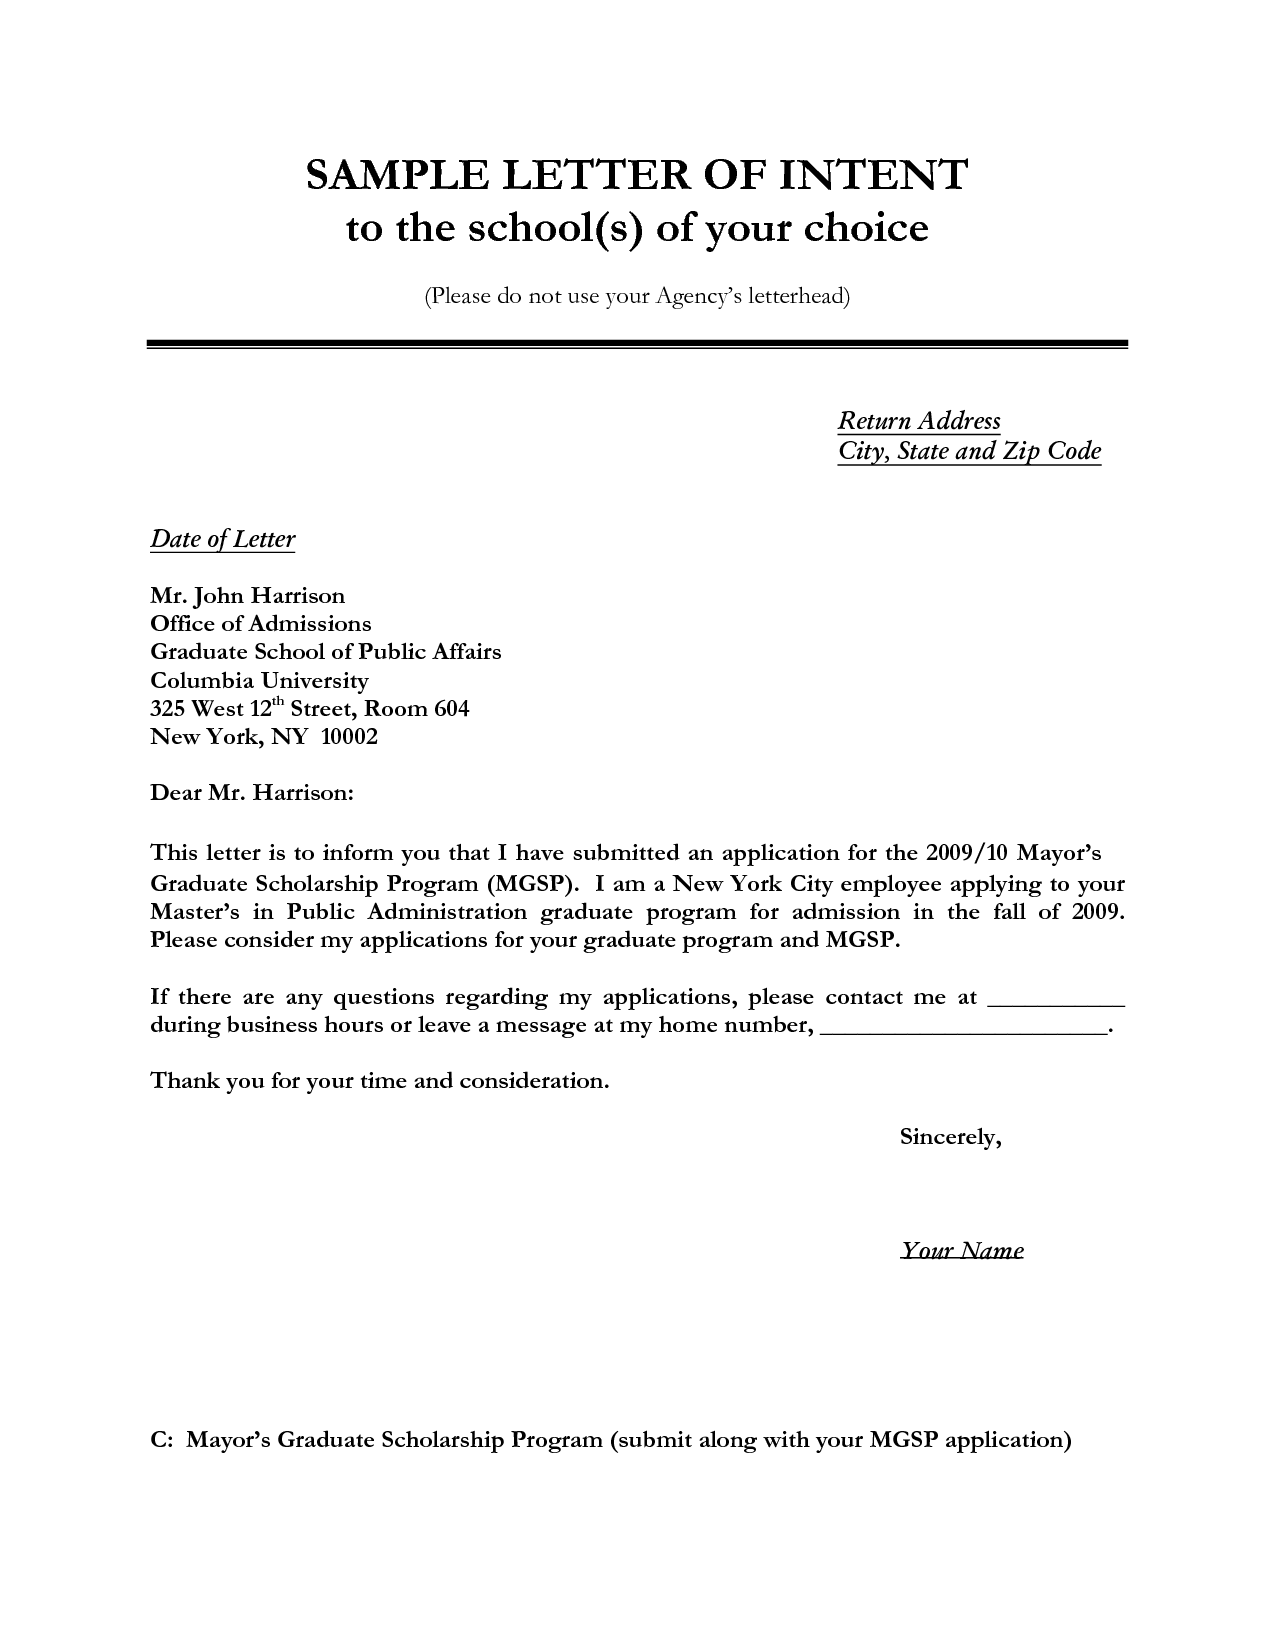 Letter Of Intent Application Job Sample Letter Of Intent For Job